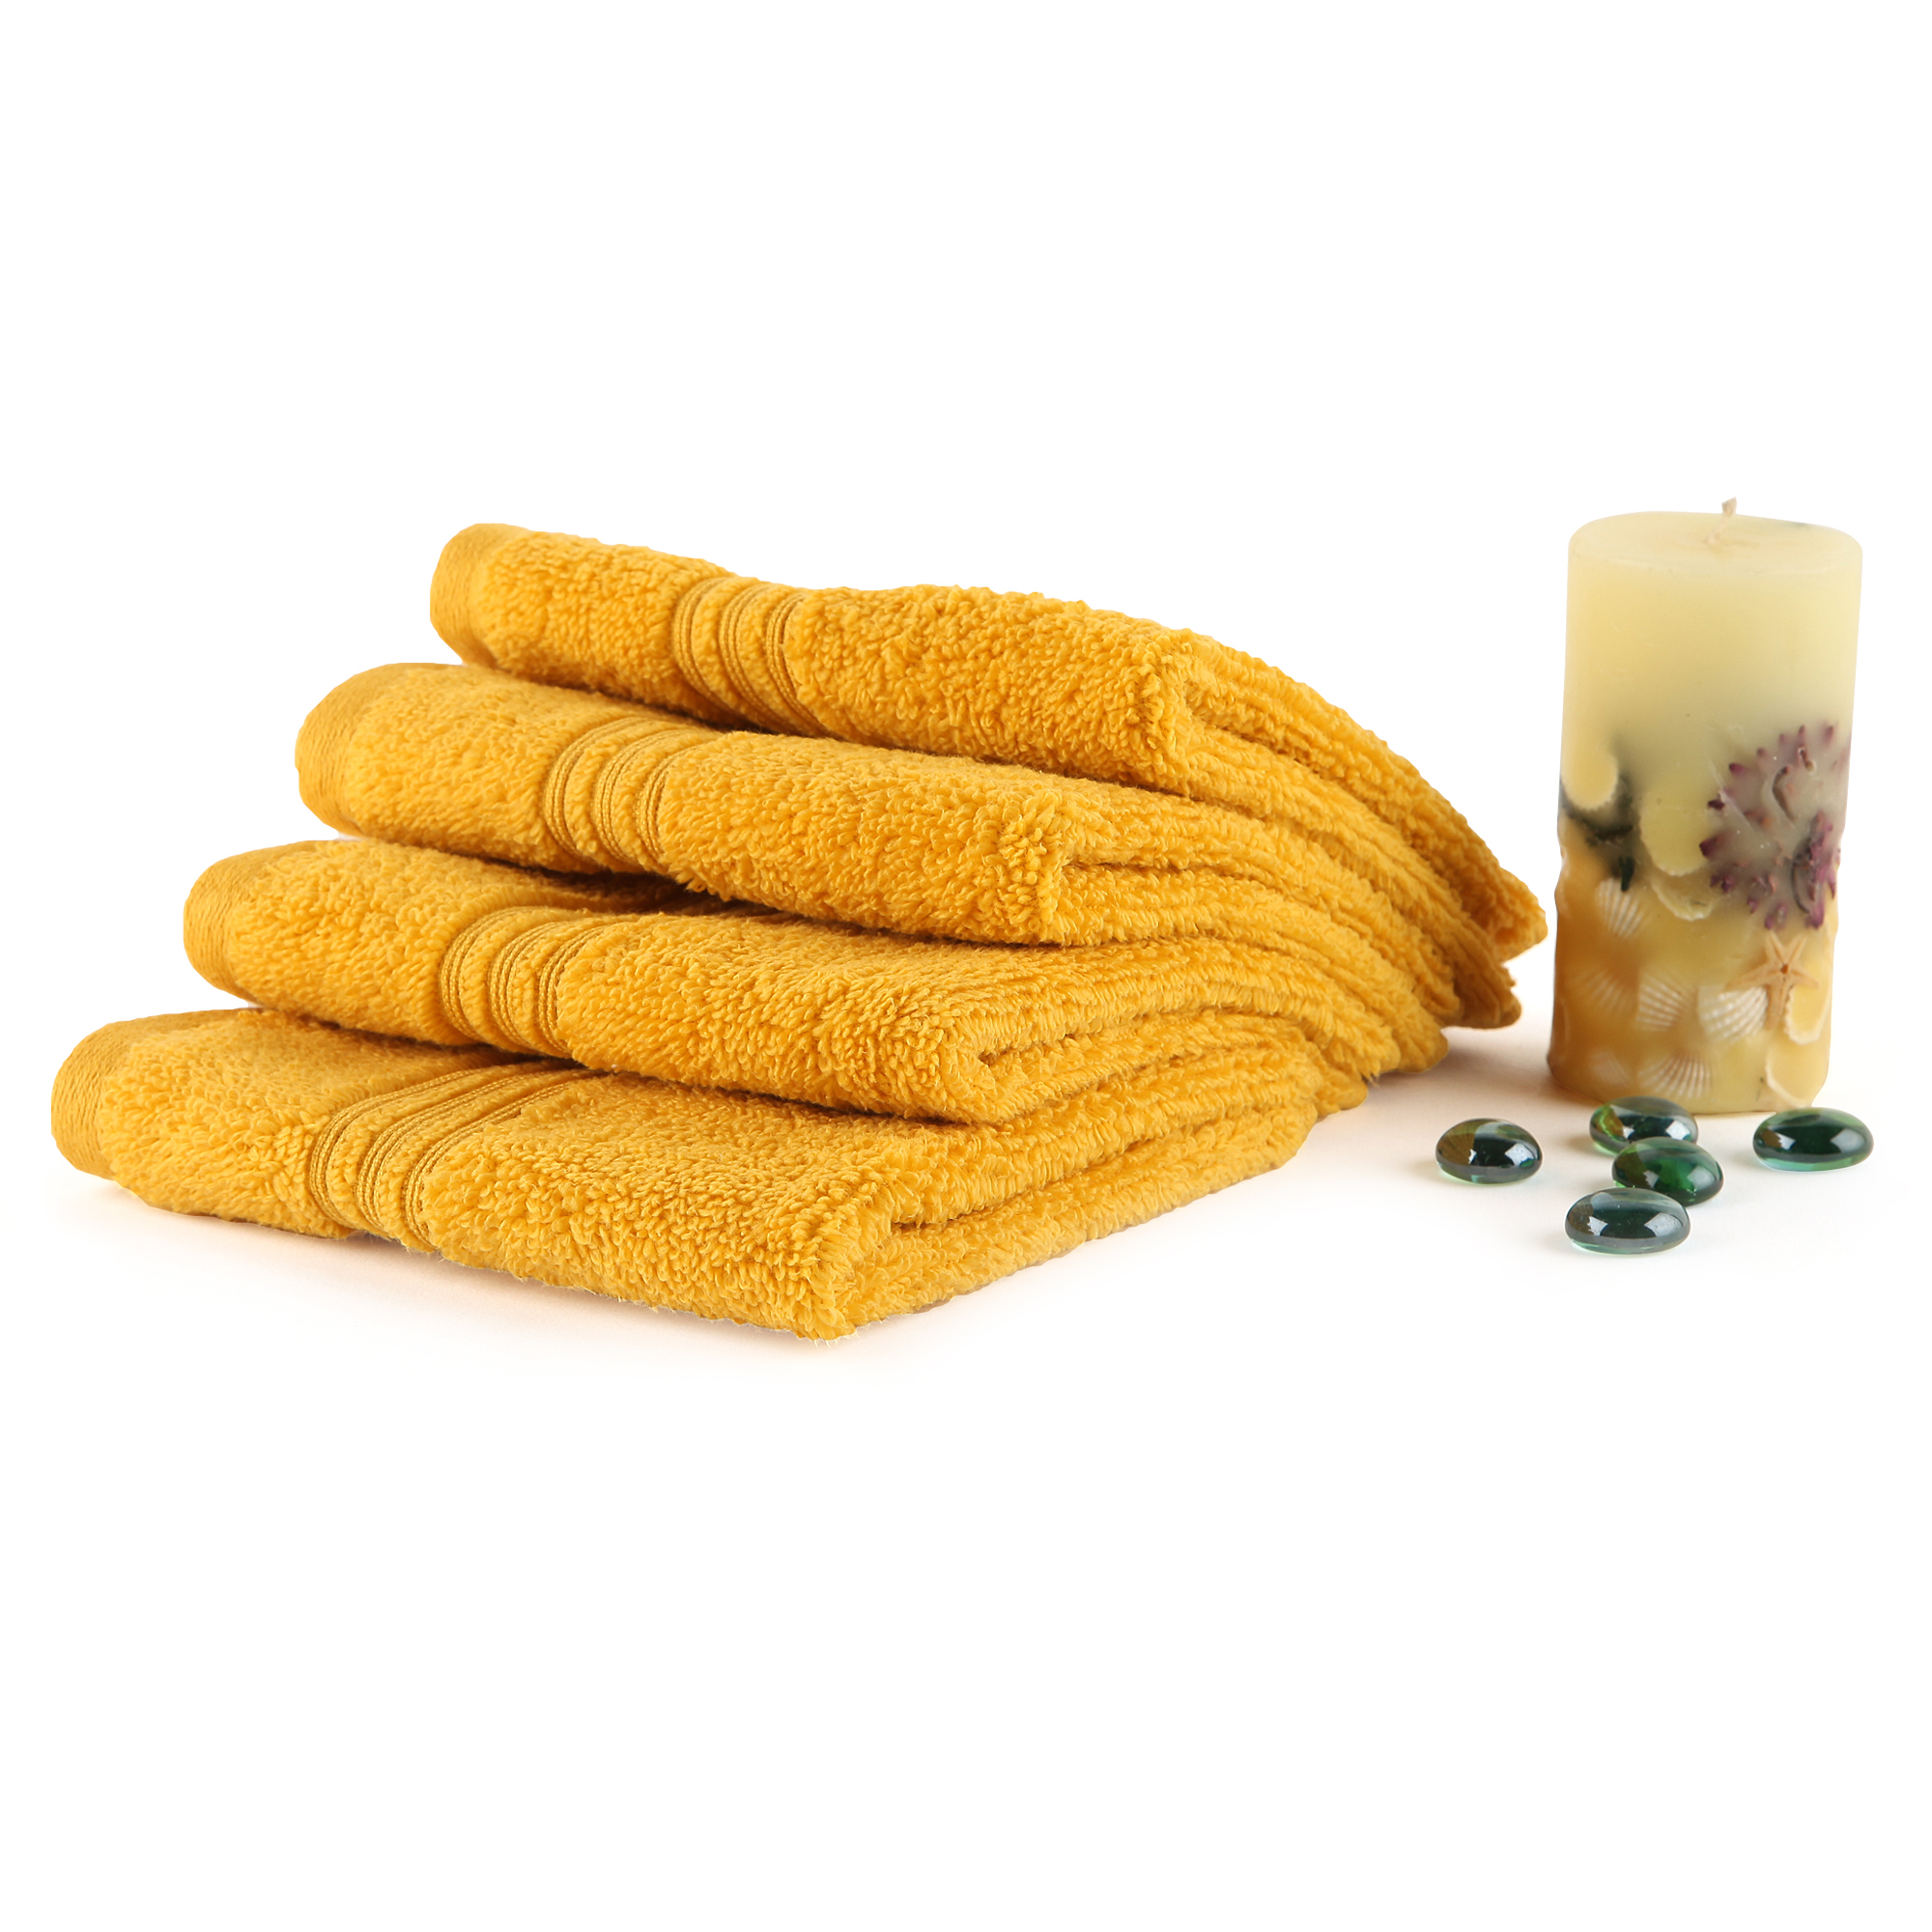 Spaces Swift Dry Set 4 Cotton Face Towel Cotton Towel Sets in Multicolour Colour by Spaces